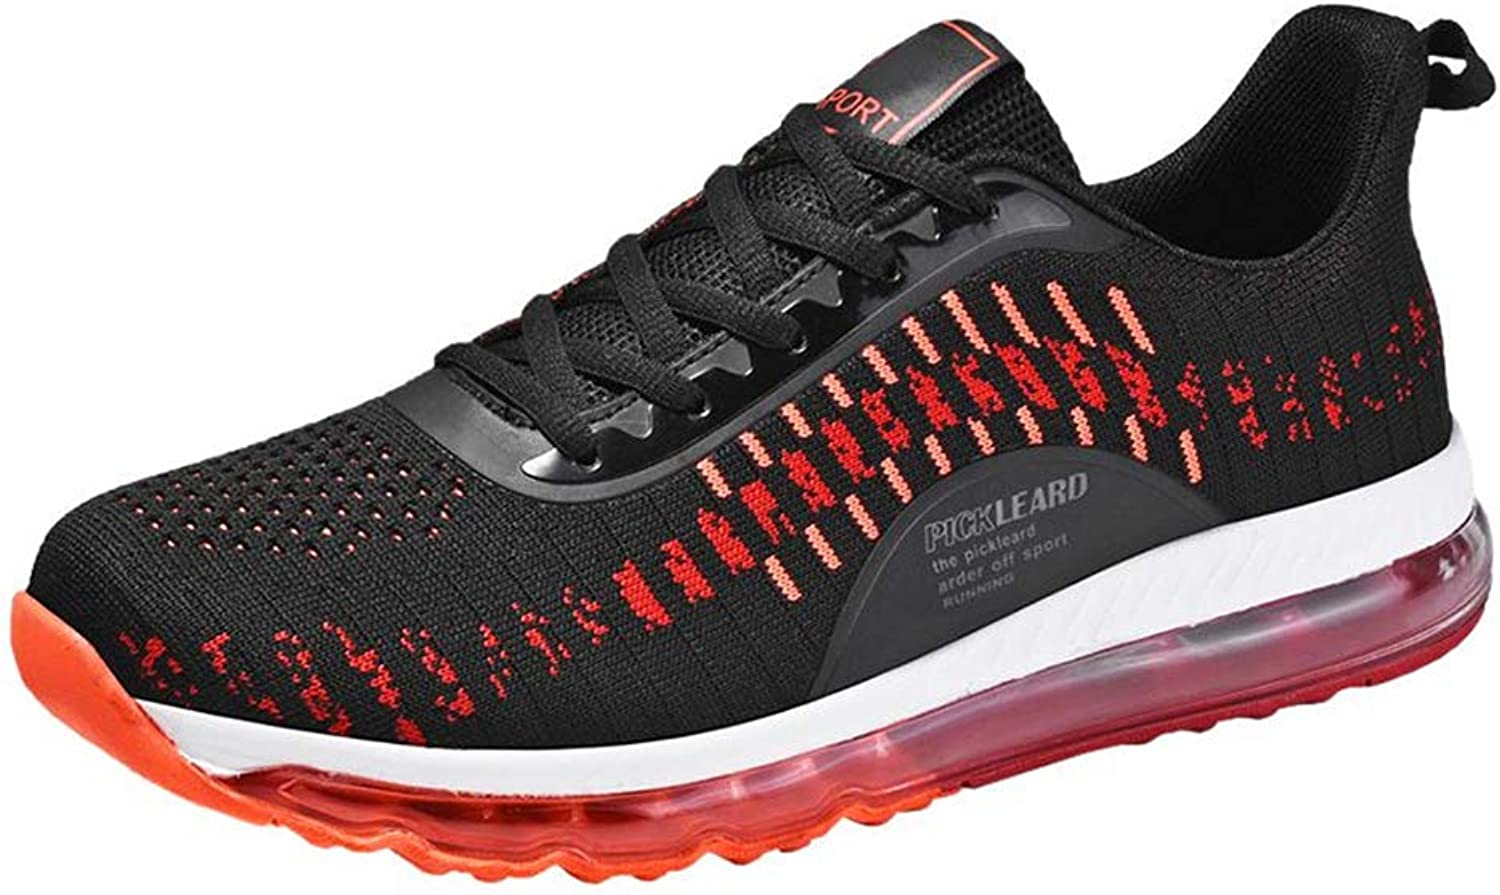 Mzq-yq Men's Casual shoes Spring Running shoes Wild Flying Woven shoes Xl Men's shoes Air Cushion 46,47,48